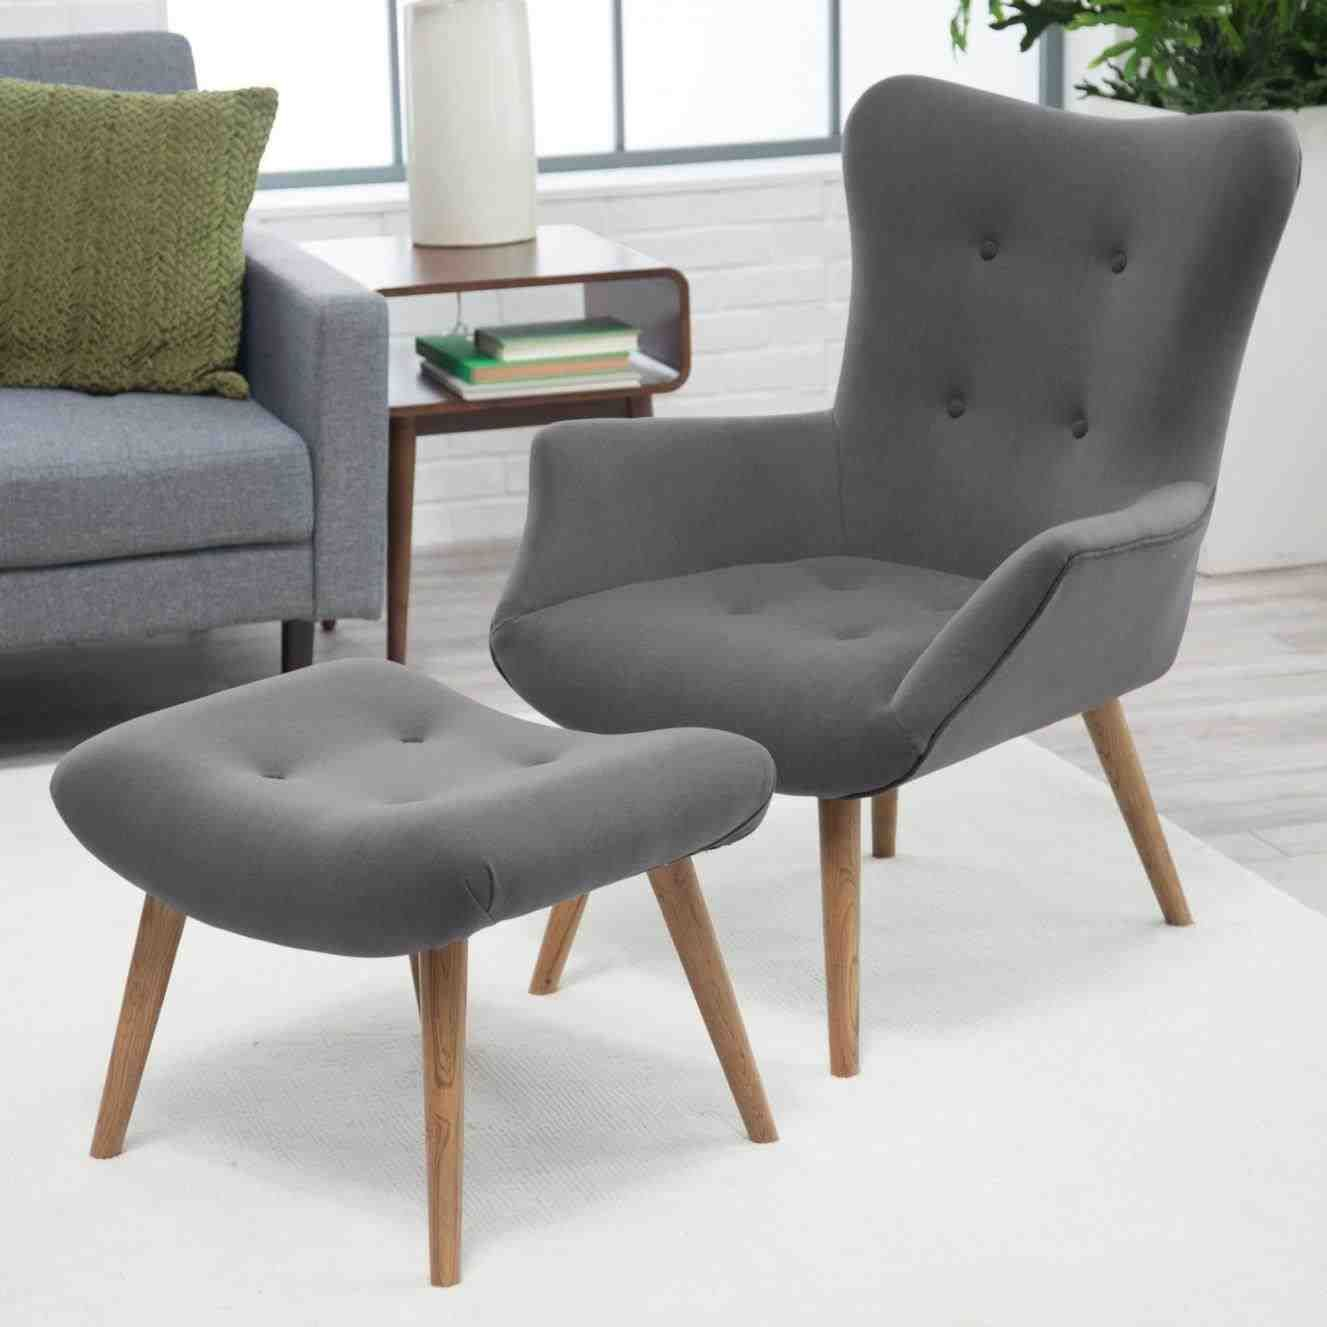 Cheap modern furniture melbourne cheap modern dining chairs expensive leather dining chairs round glass top